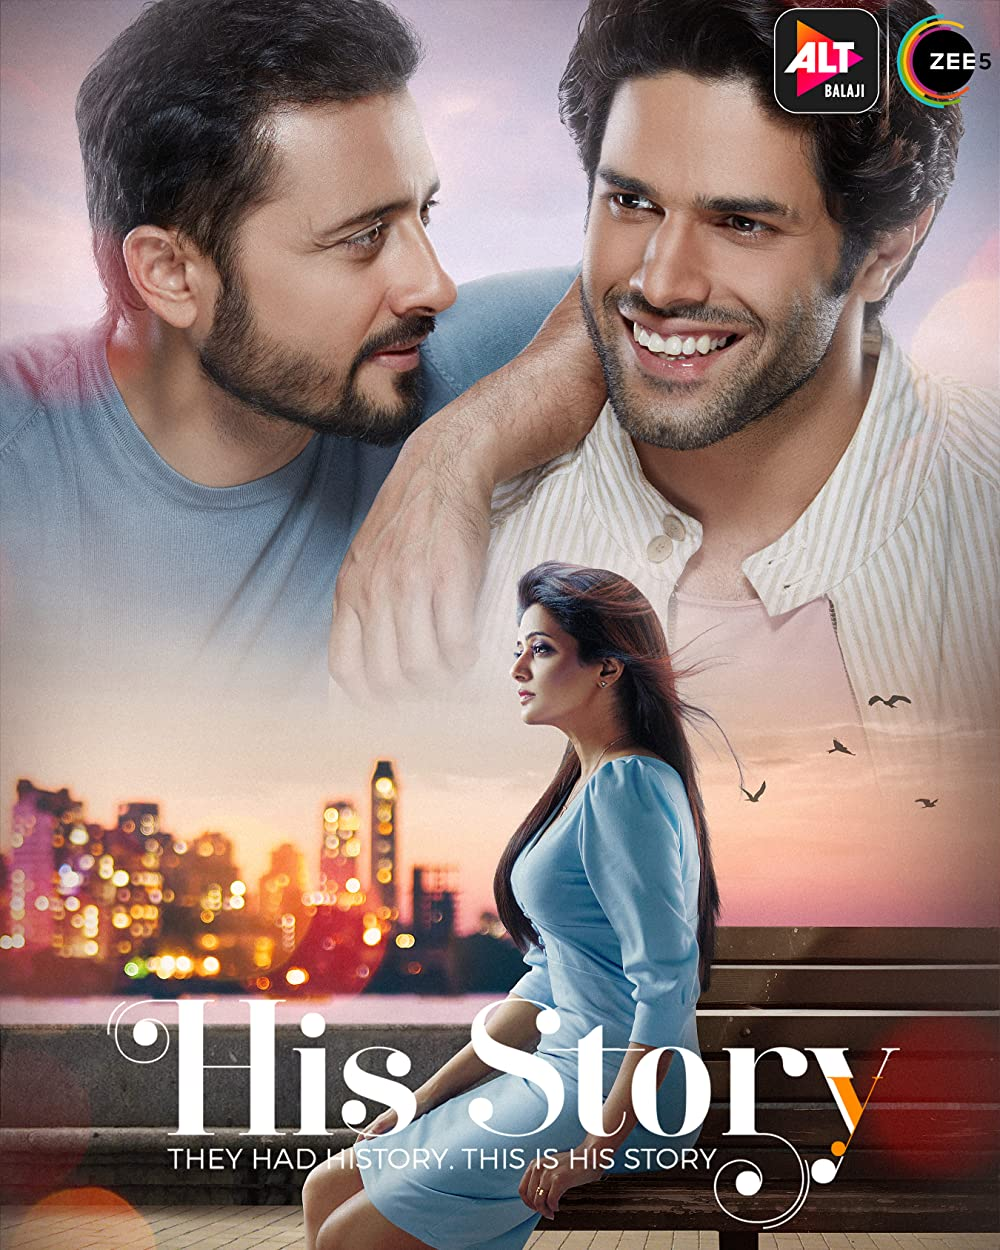 His Storyy 2021 S01 Hindi ALTBalaji Complete Web Series 720p HDRip 1.6GB Download